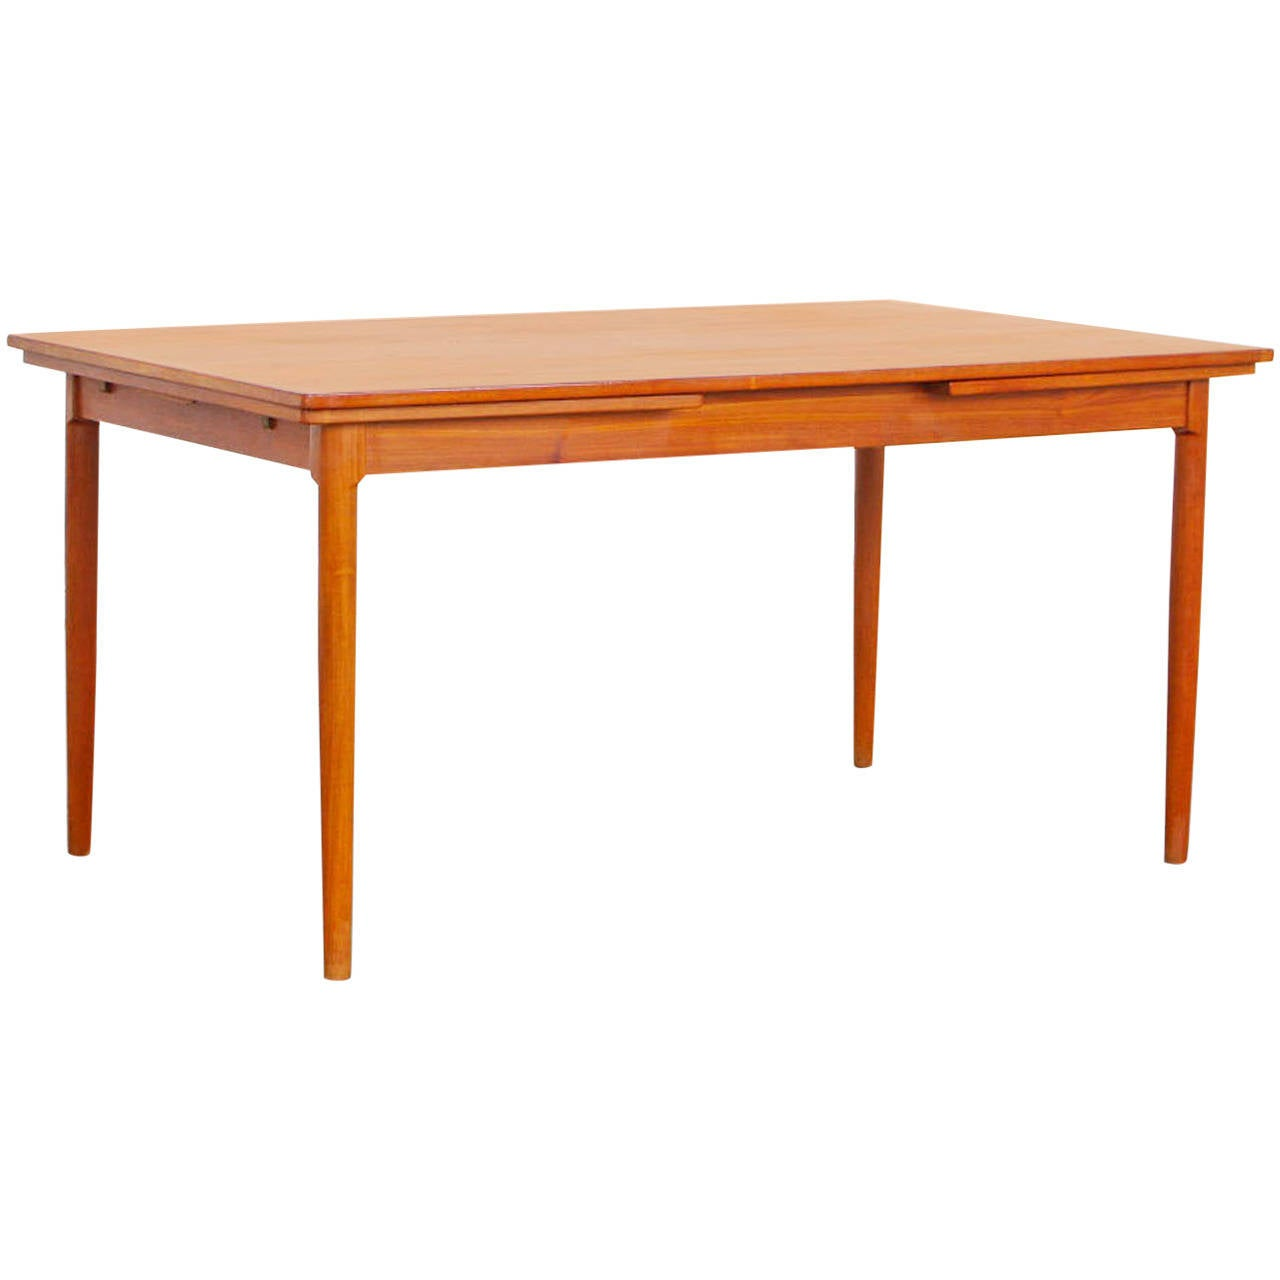 expandable teak dining table attr to harry ostergaard at 1stdibs. Black Bedroom Furniture Sets. Home Design Ideas